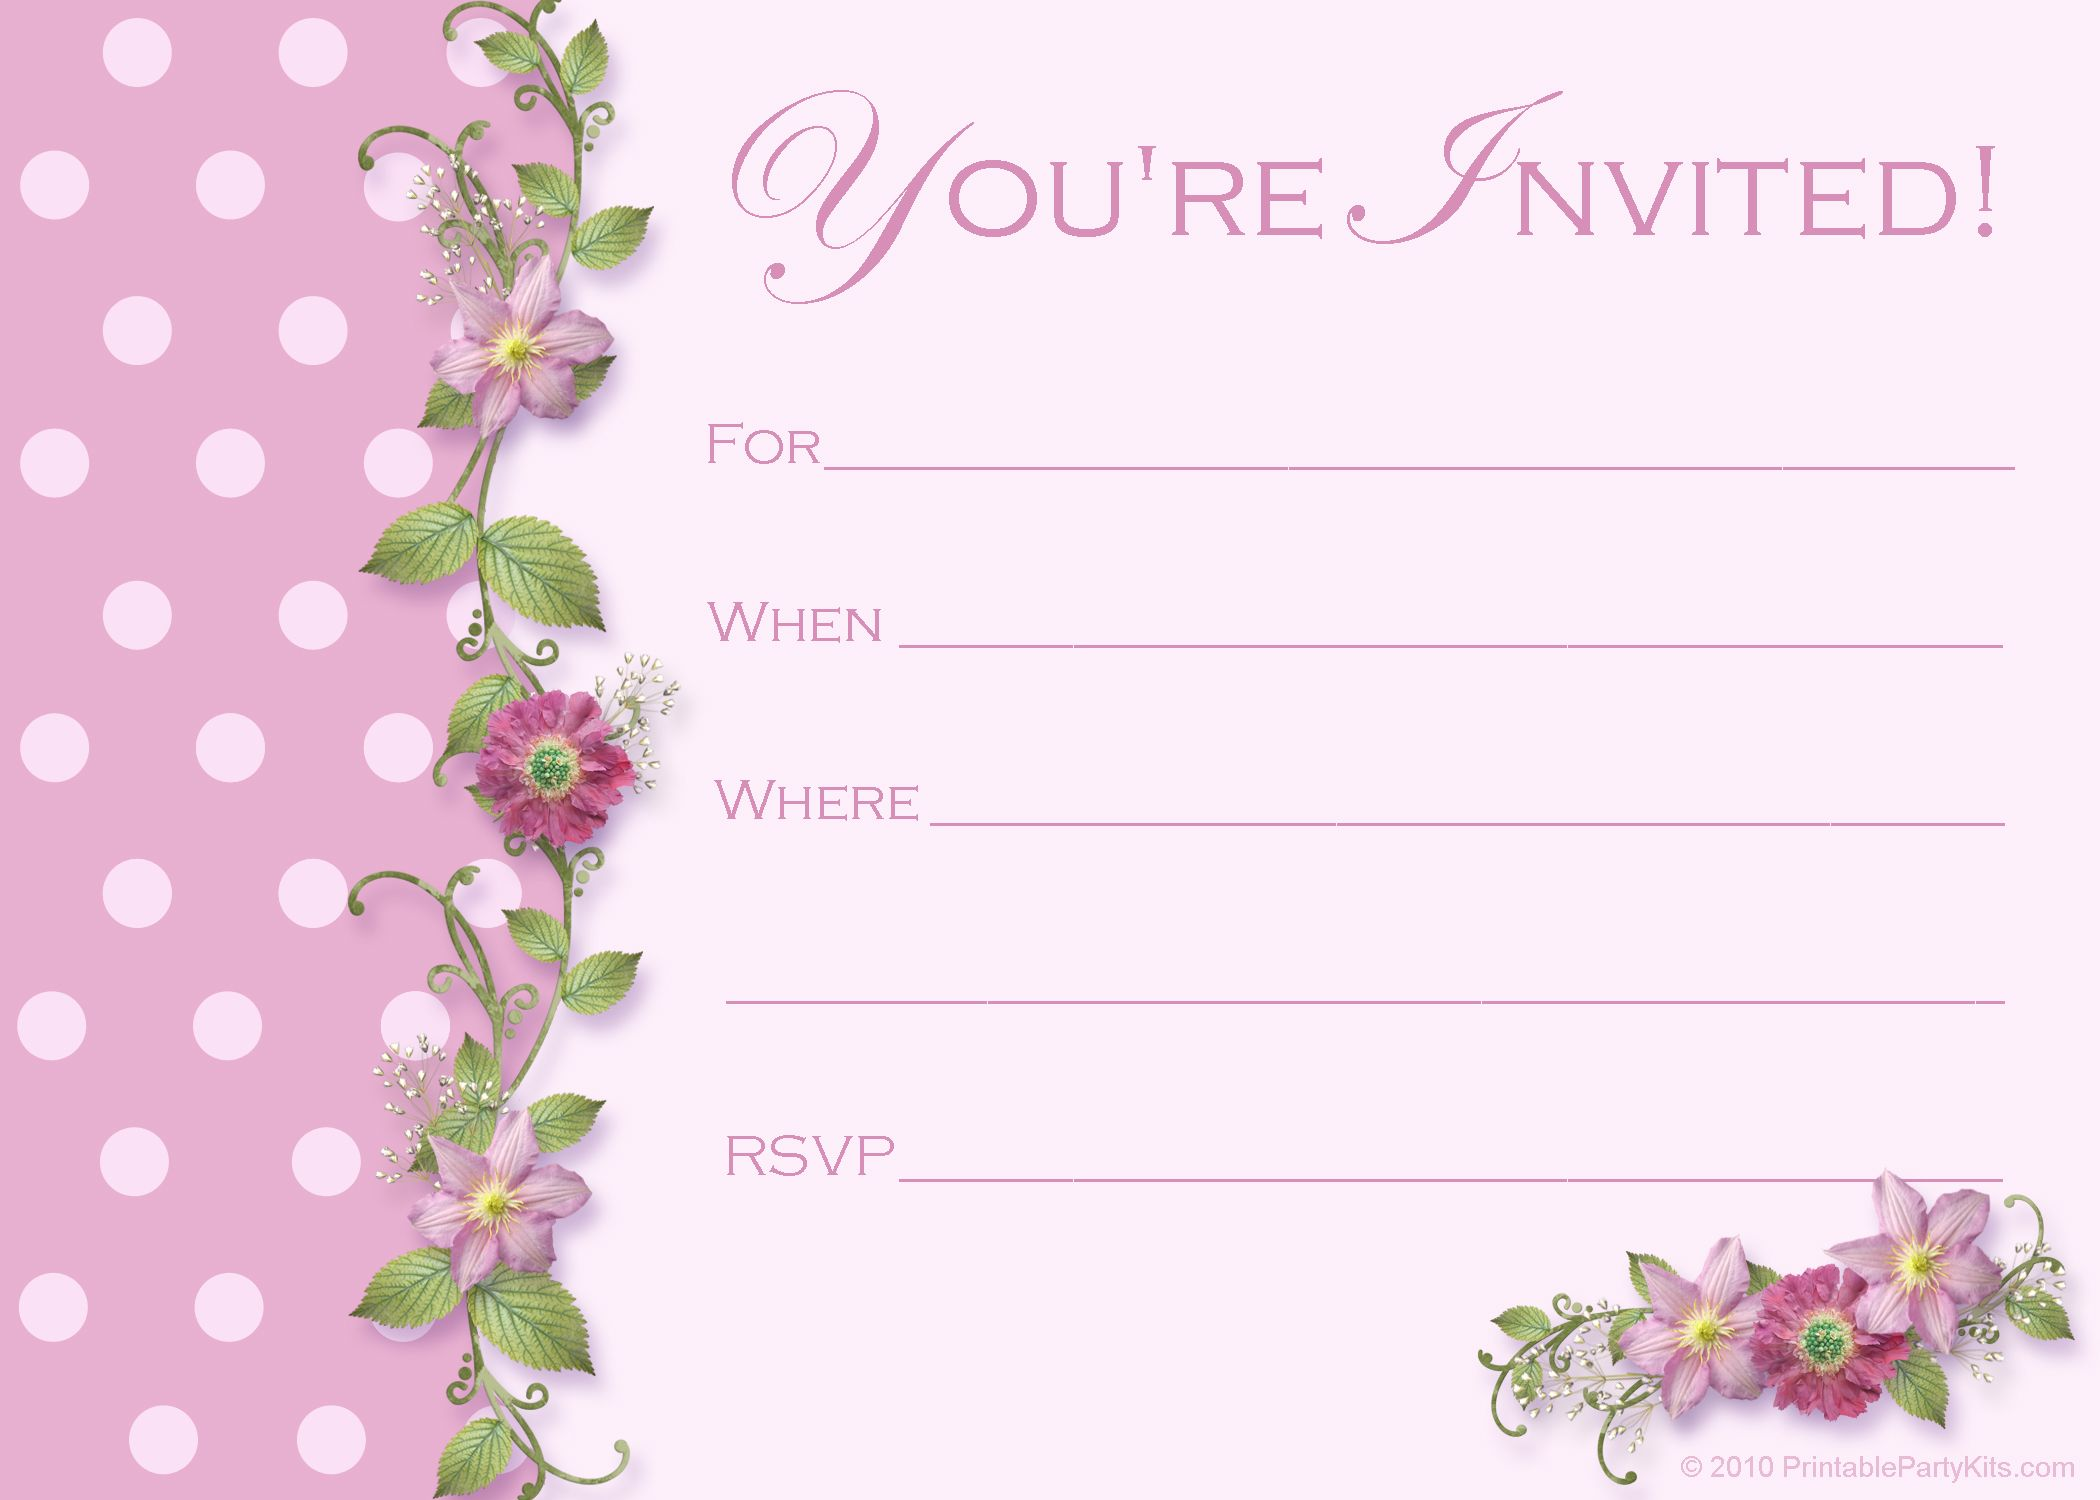 image for blank birthday invitations templates parties weddings image for blank birthday invitations templates